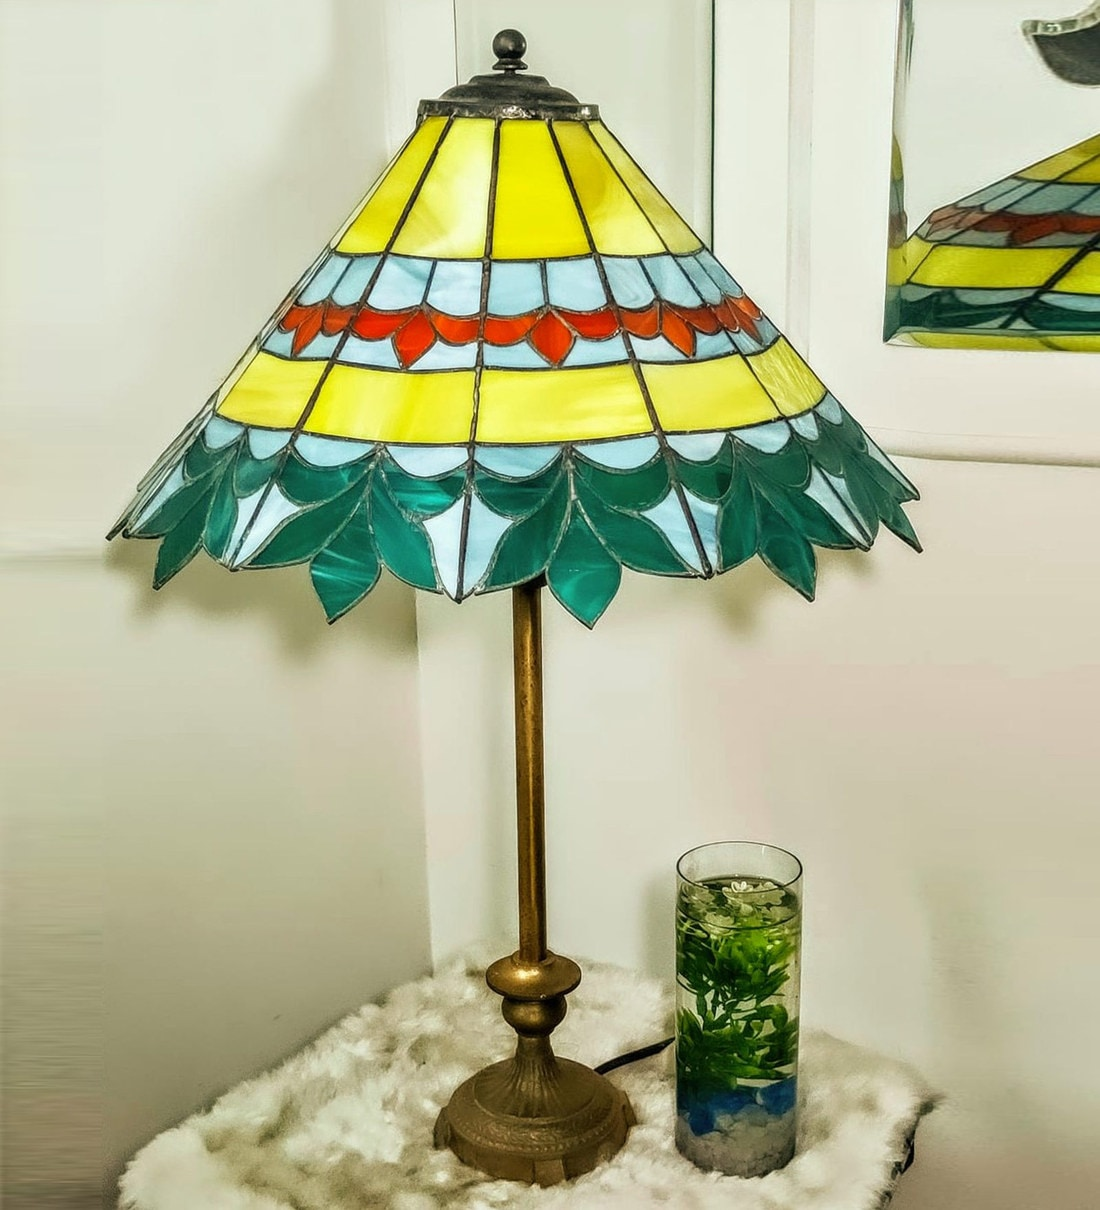 Buy Yellow Stained Glass Shade Tiffany Table Lamp With Antique Gold Base By Stg House Online Mid Century Table Lamps Table Lamps Lamps Lighting Pepperfry Product